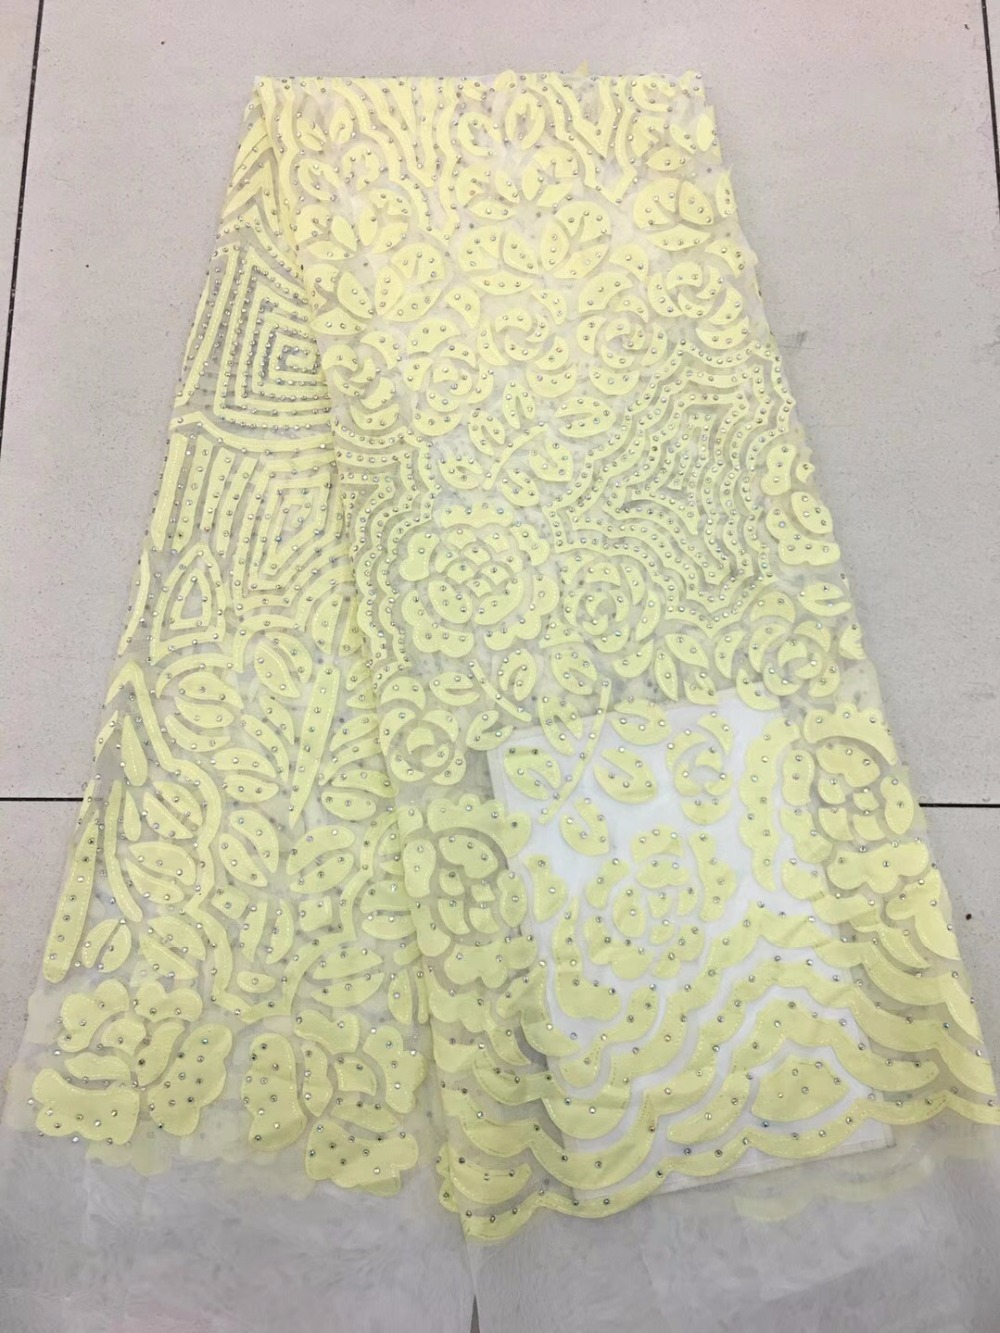 Tulle Chiffon Lace Fabric Embroidered Nigerian Women French Lace Fabric High Quality African Lace Fabric With StoneTulle Chiffon Lace Fabric Embroidered Nigerian Women French Lace Fabric High Quality African Lace Fabric With Stone